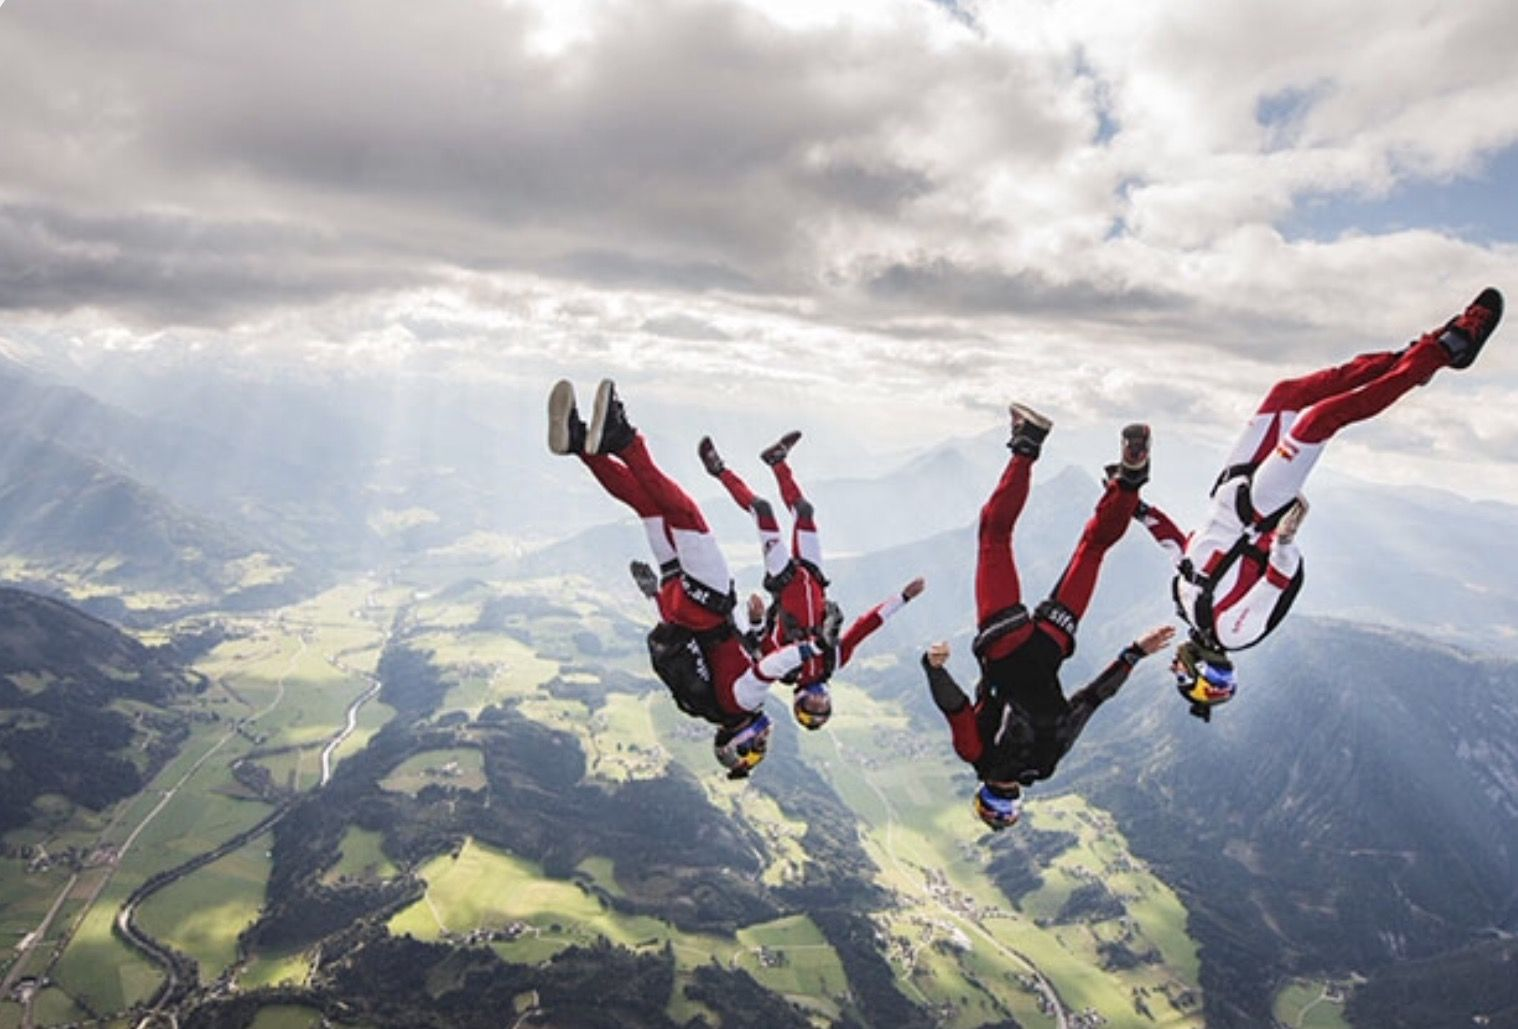 Pin By Shubham Sankhala On Xtreme Skydiving Photography Autumn Photography